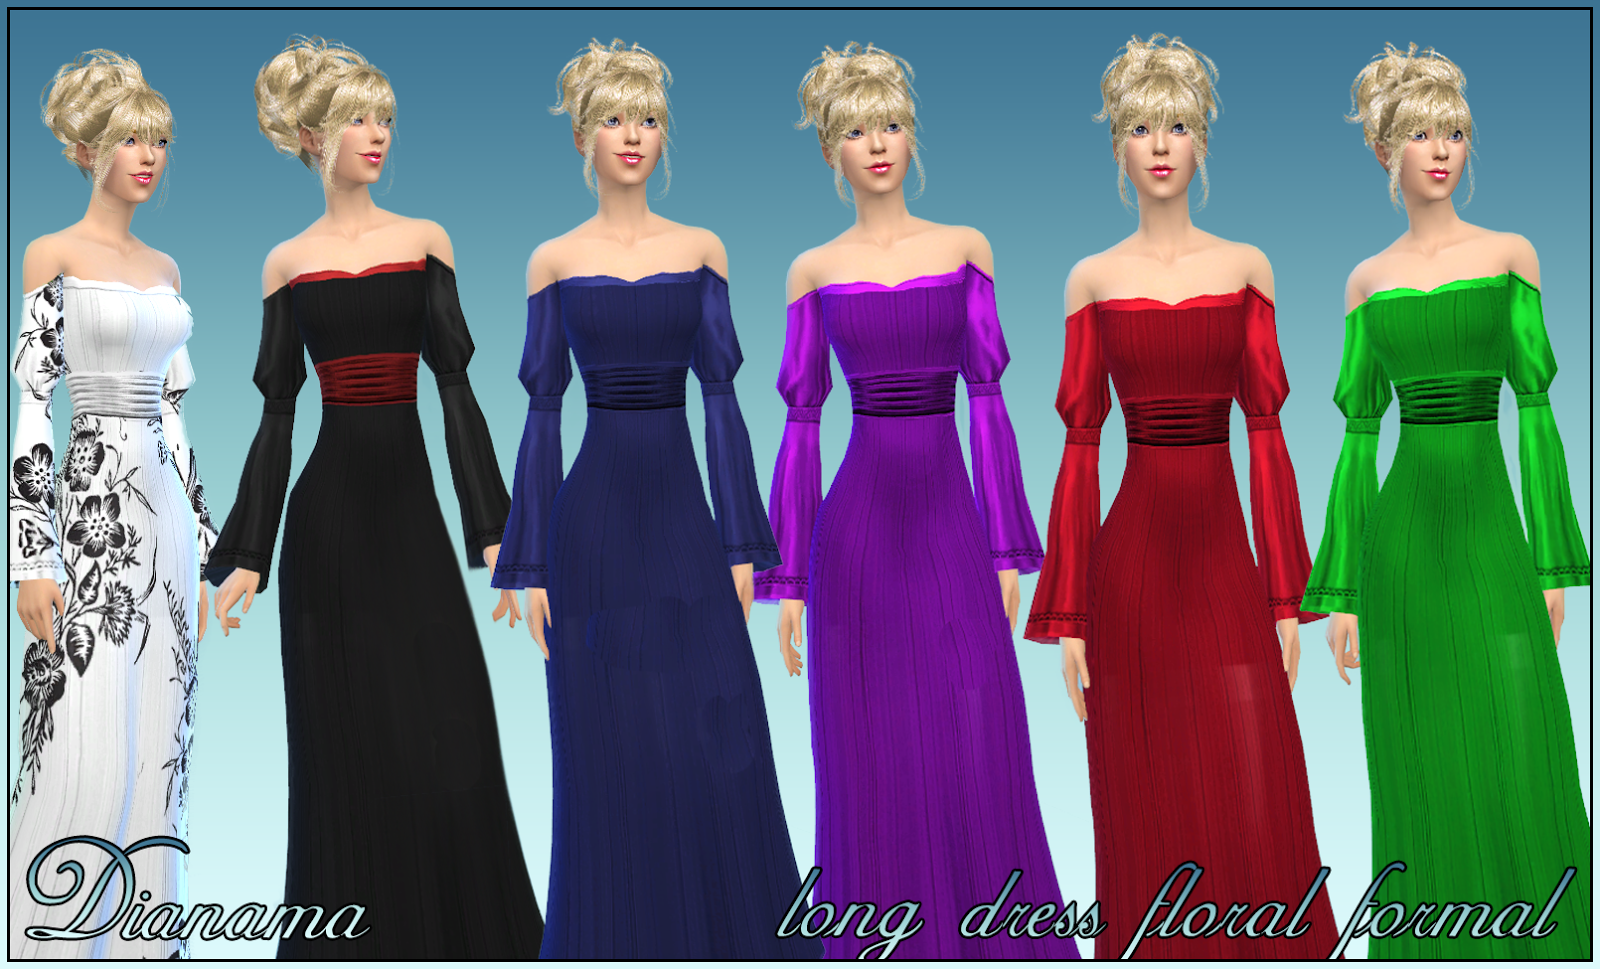 Floral Formal Gown by Dianama